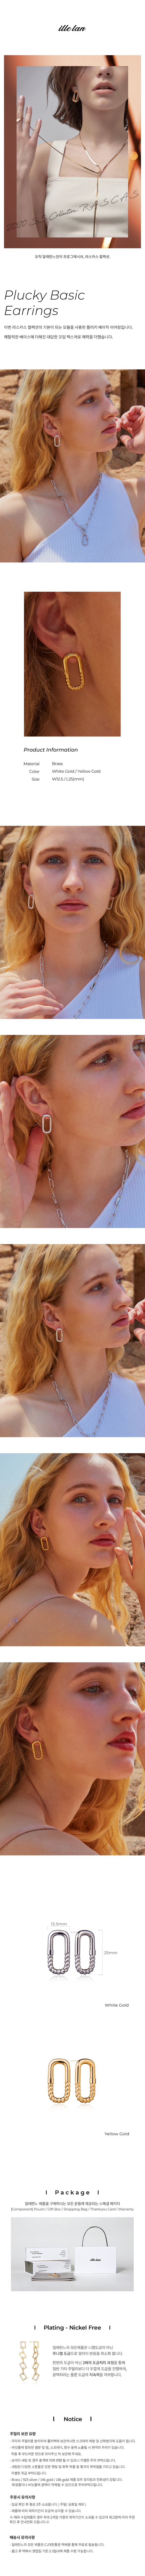 일레란느(ILLE LAN) Plucky Basic Earrings